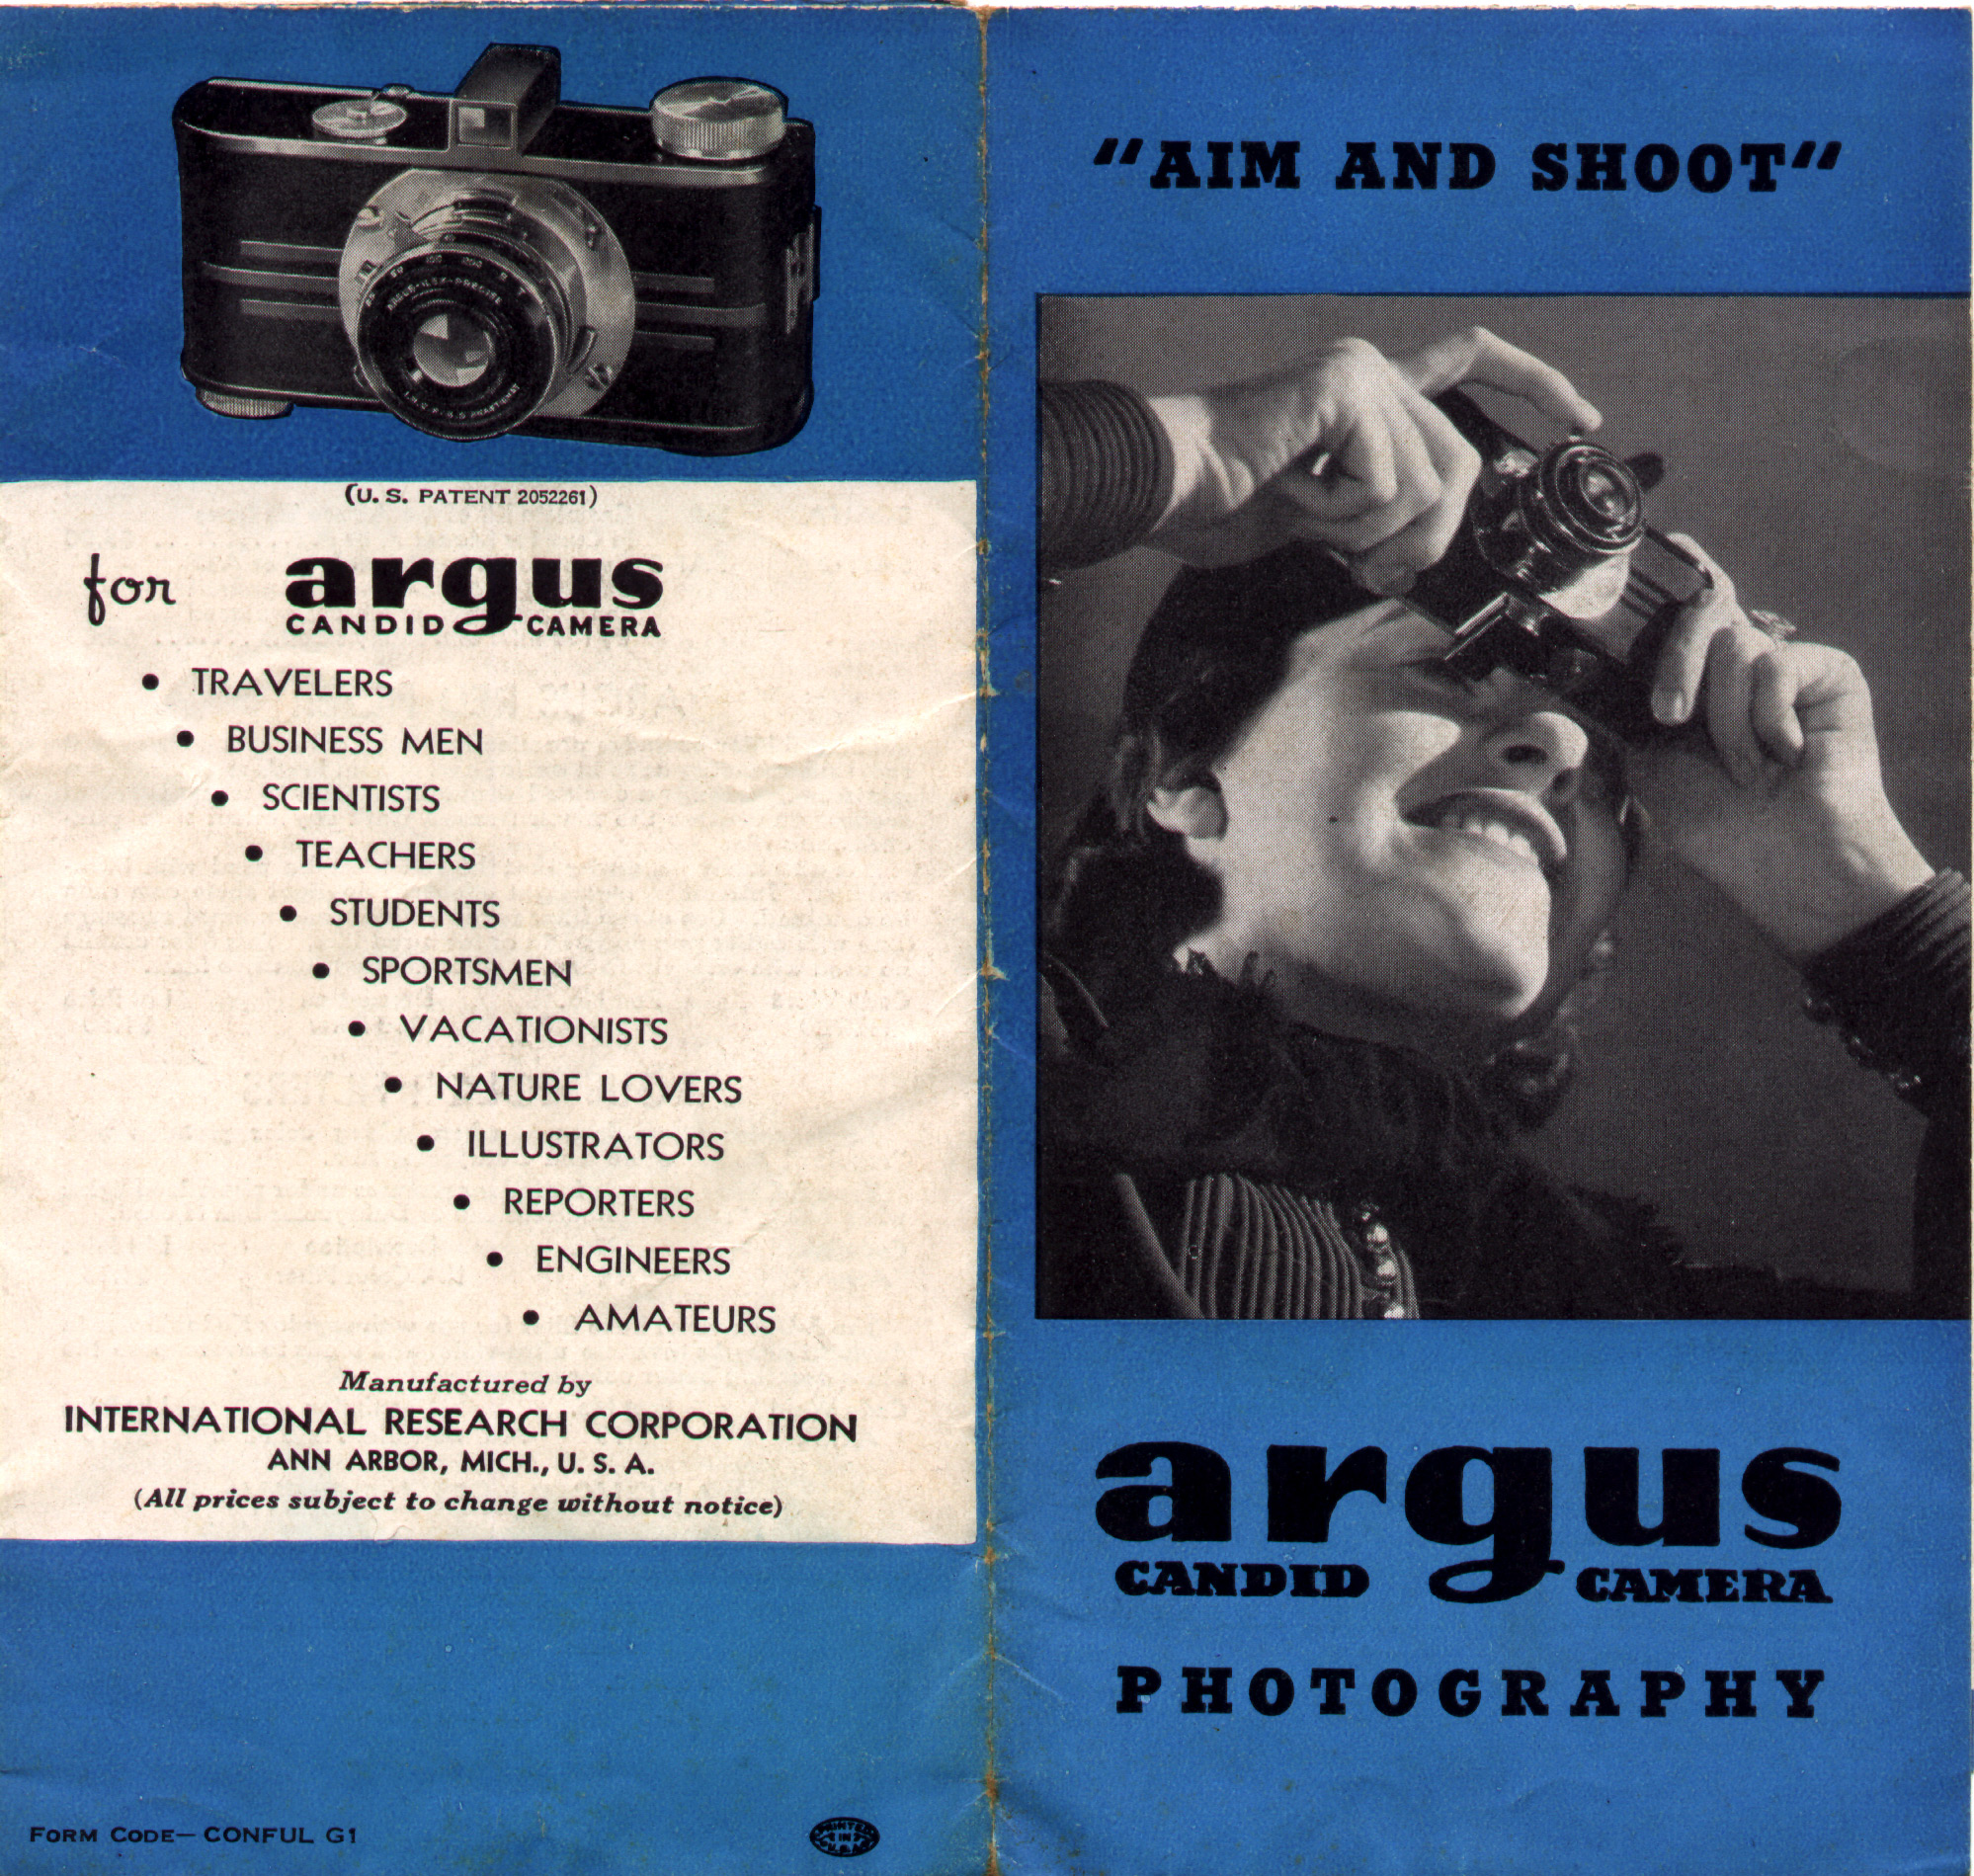 http://jrandomimage.com/images/argus-candid-camera-1940.jpg